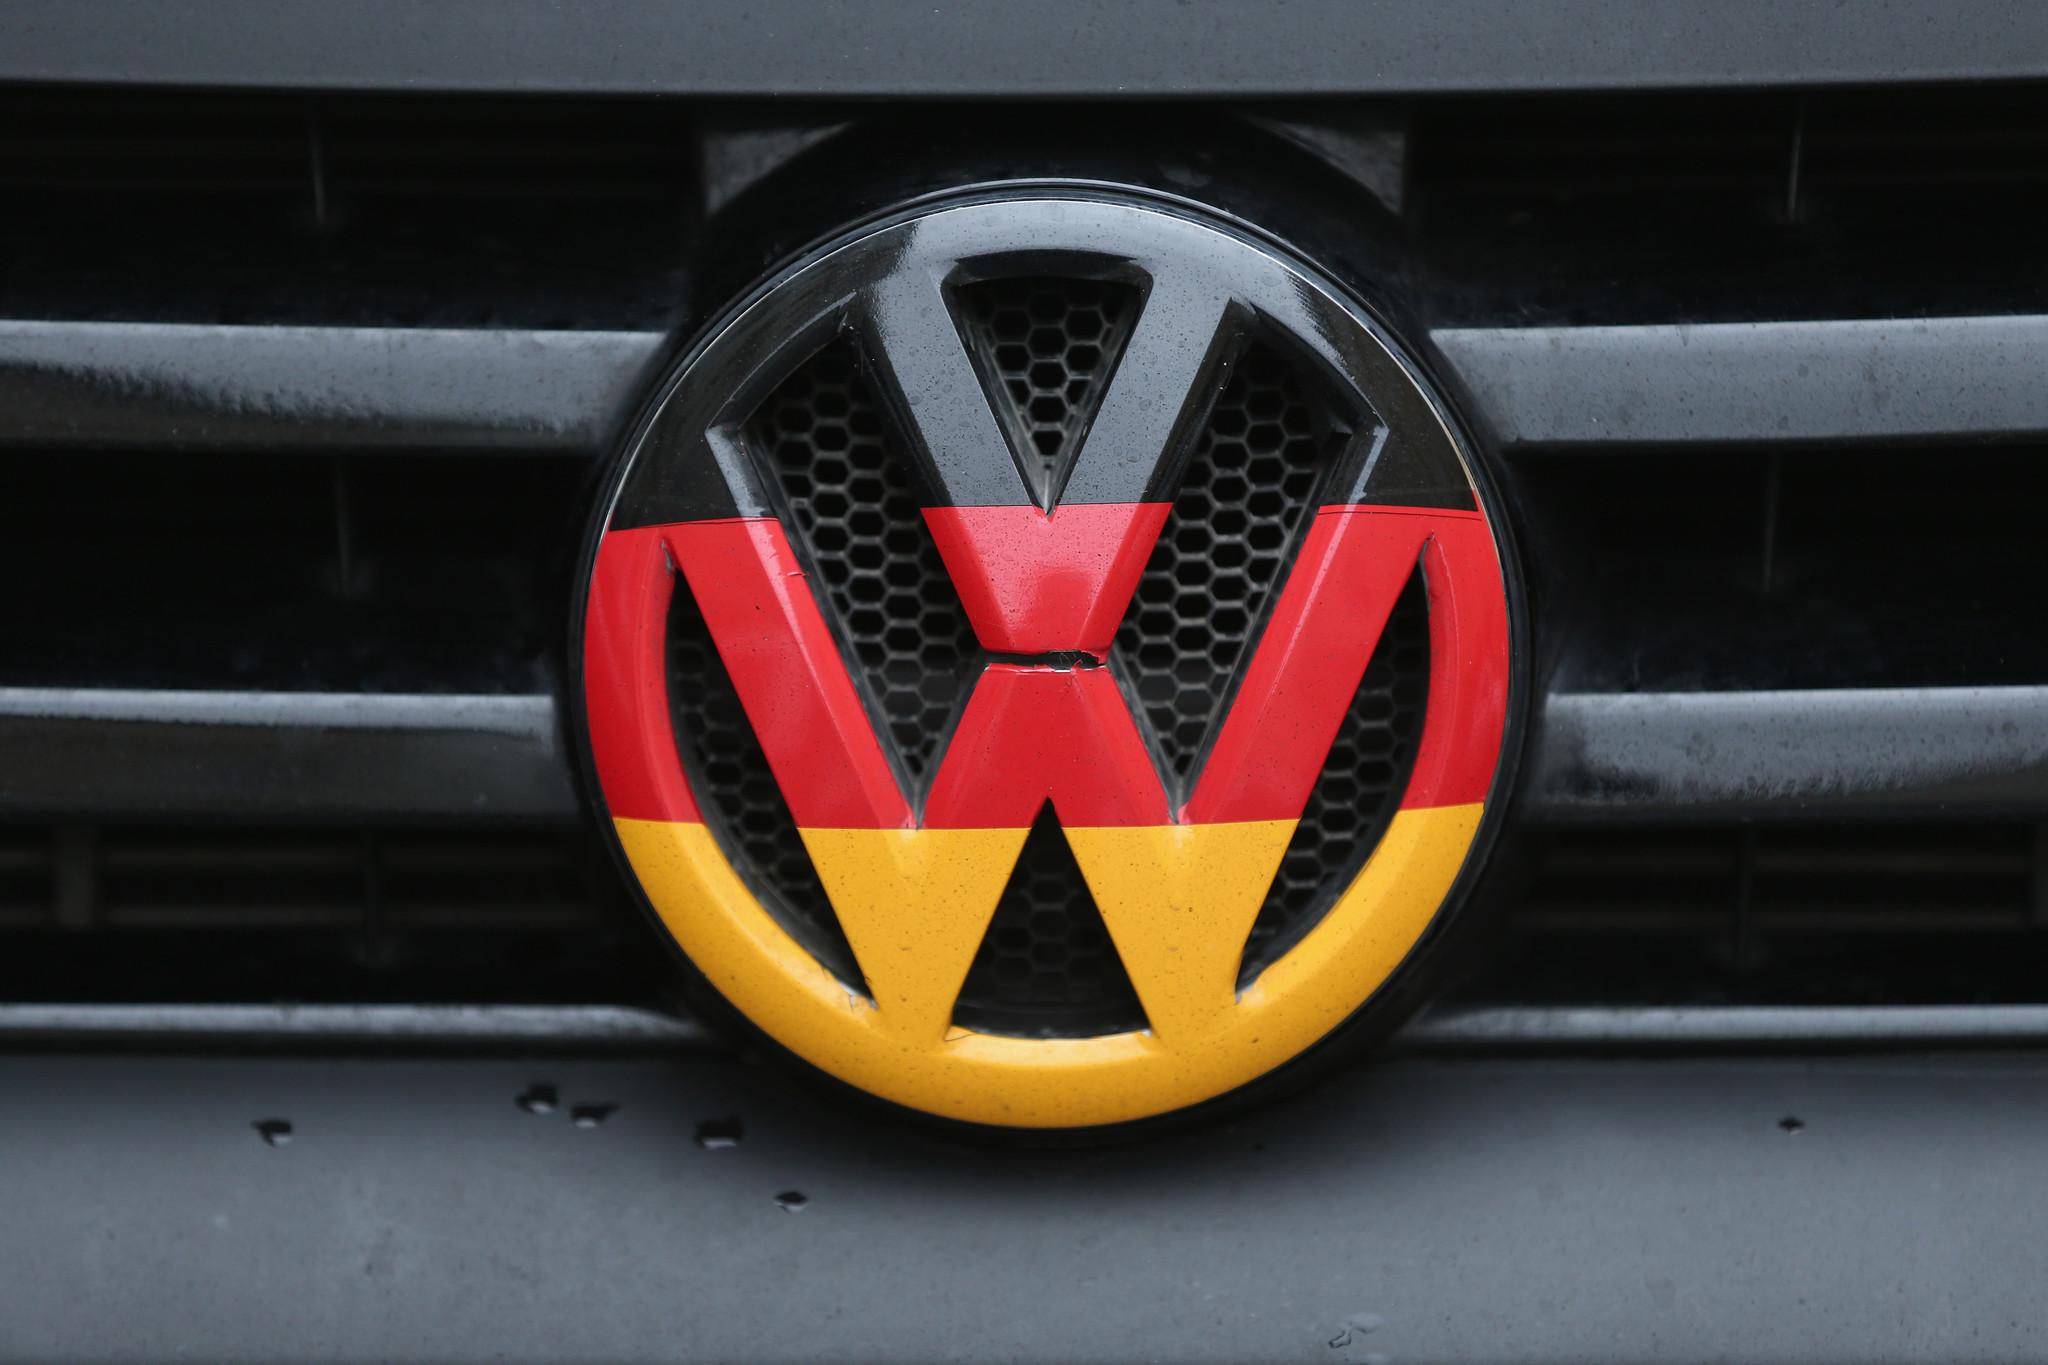 Lawsuit could scare VW out of the U.S.